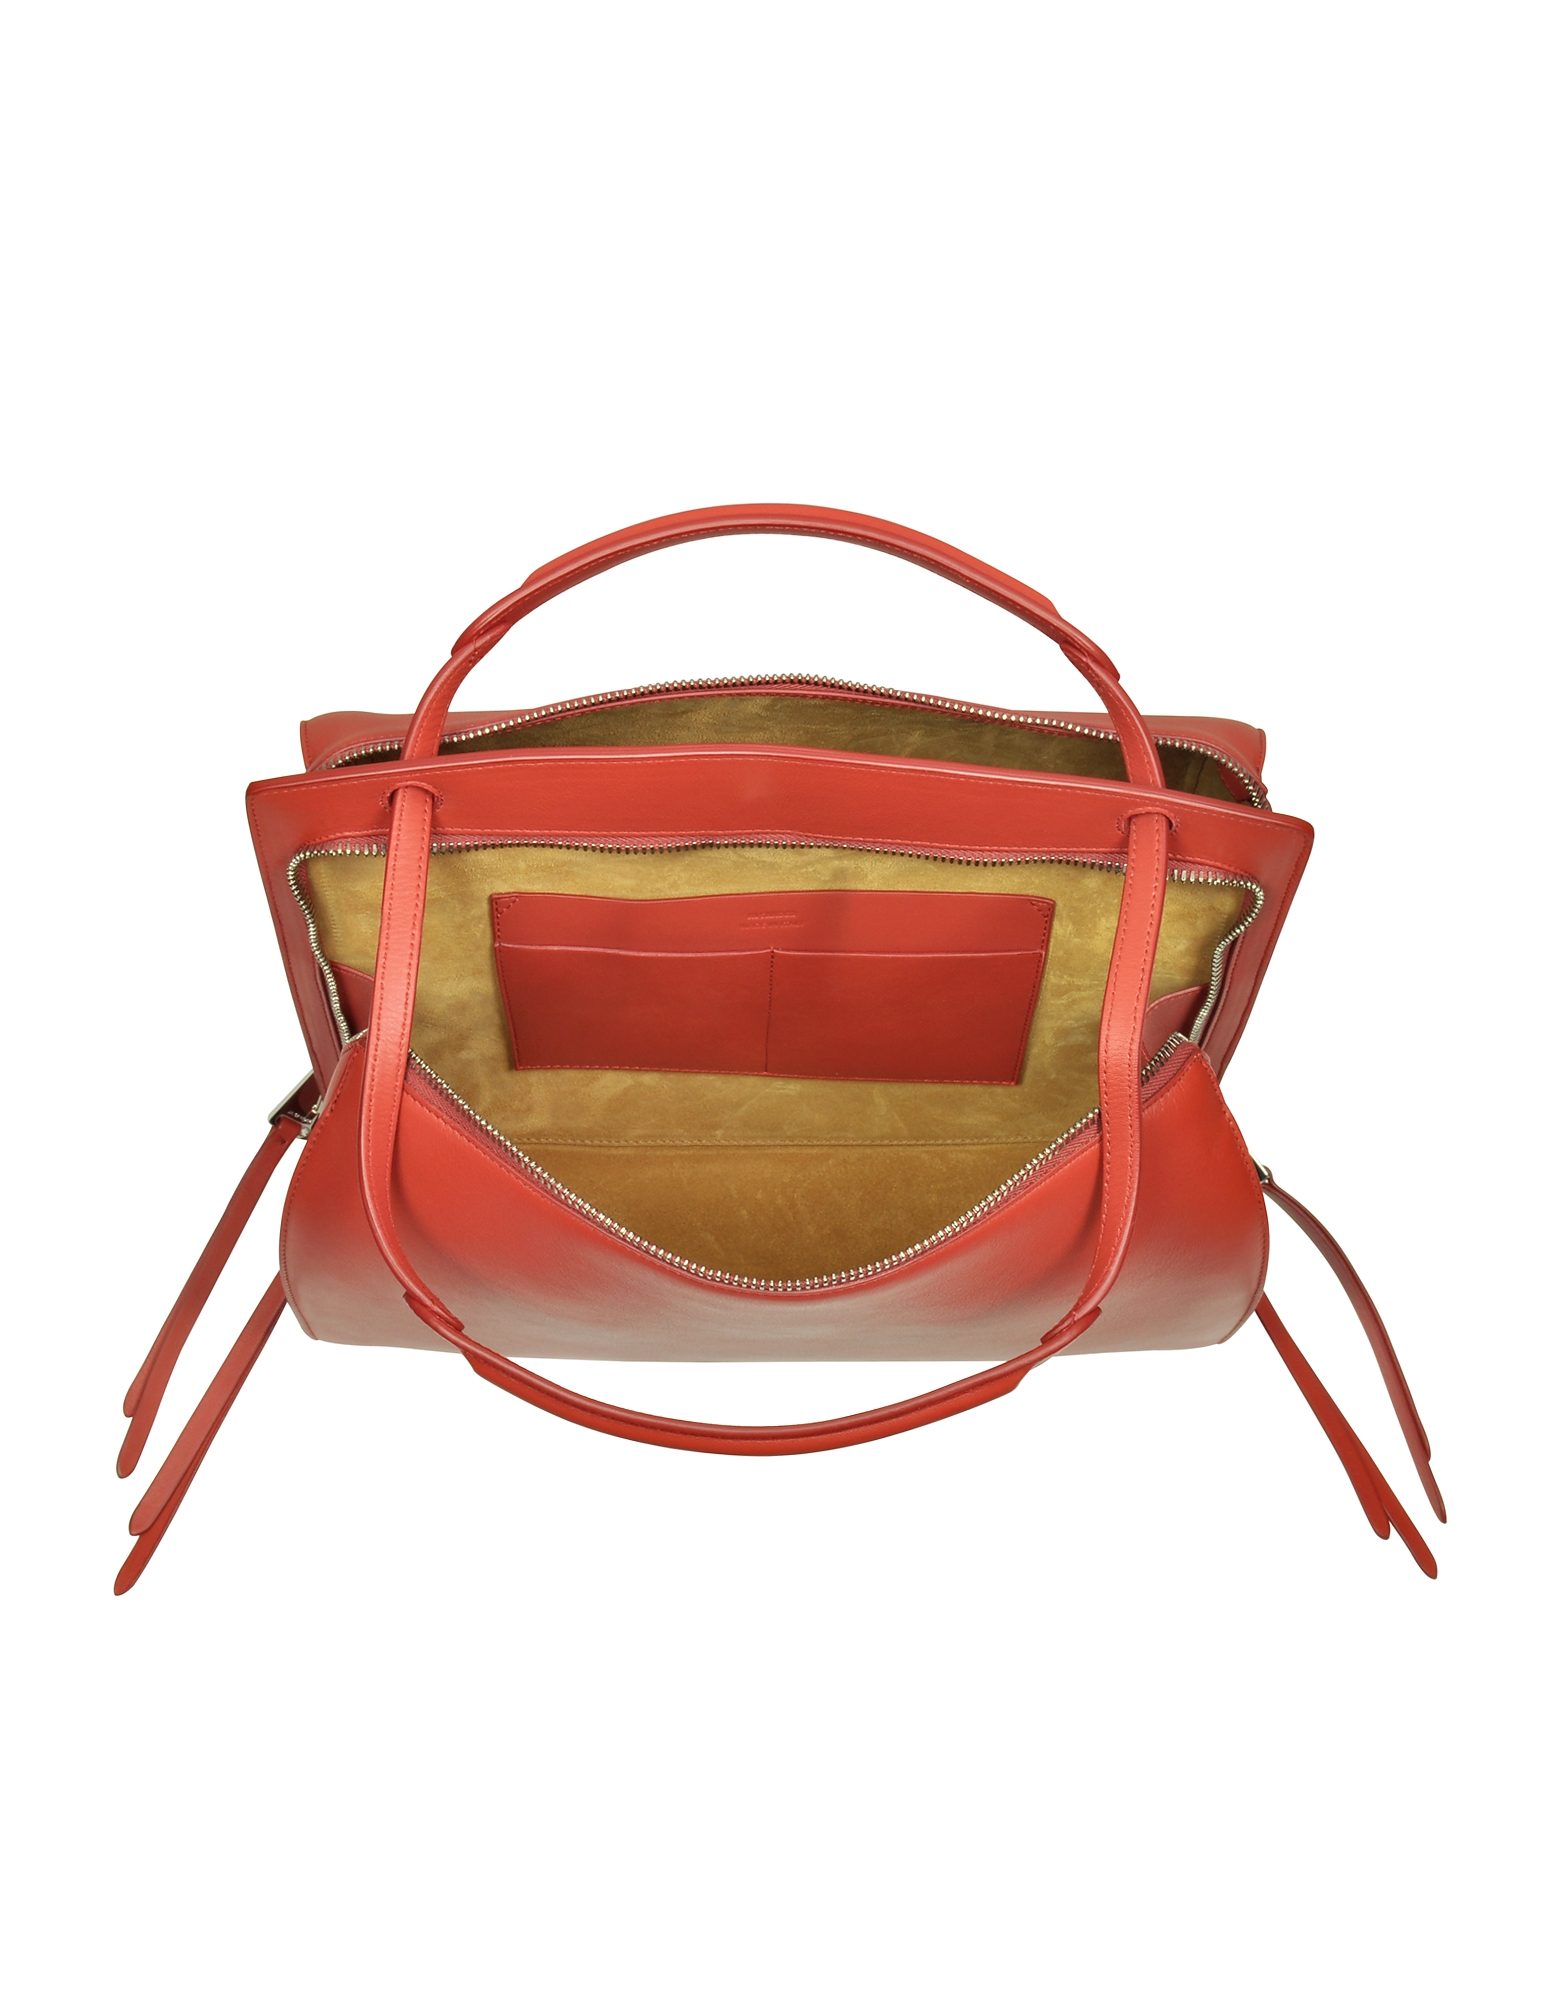 Blunt Open Red Soft Leather Medium Handbag от Forzieri INT